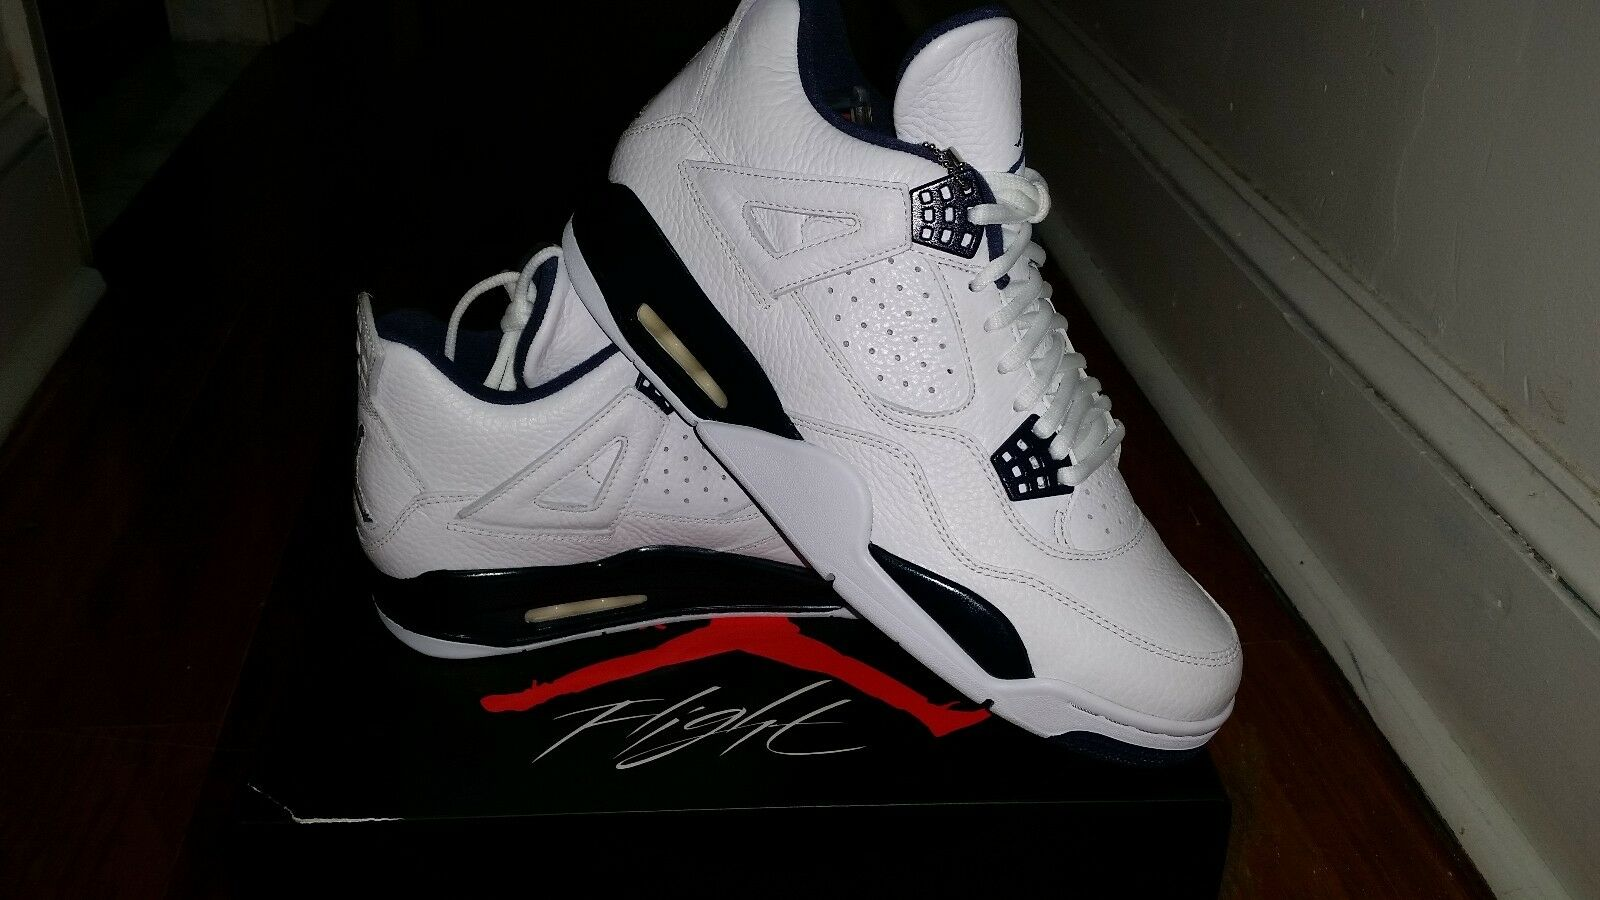 Nike Air Jordan 4 IV LS Columbia Navy Remastered 314254-107 GS & MEN Price reduction Brand discount